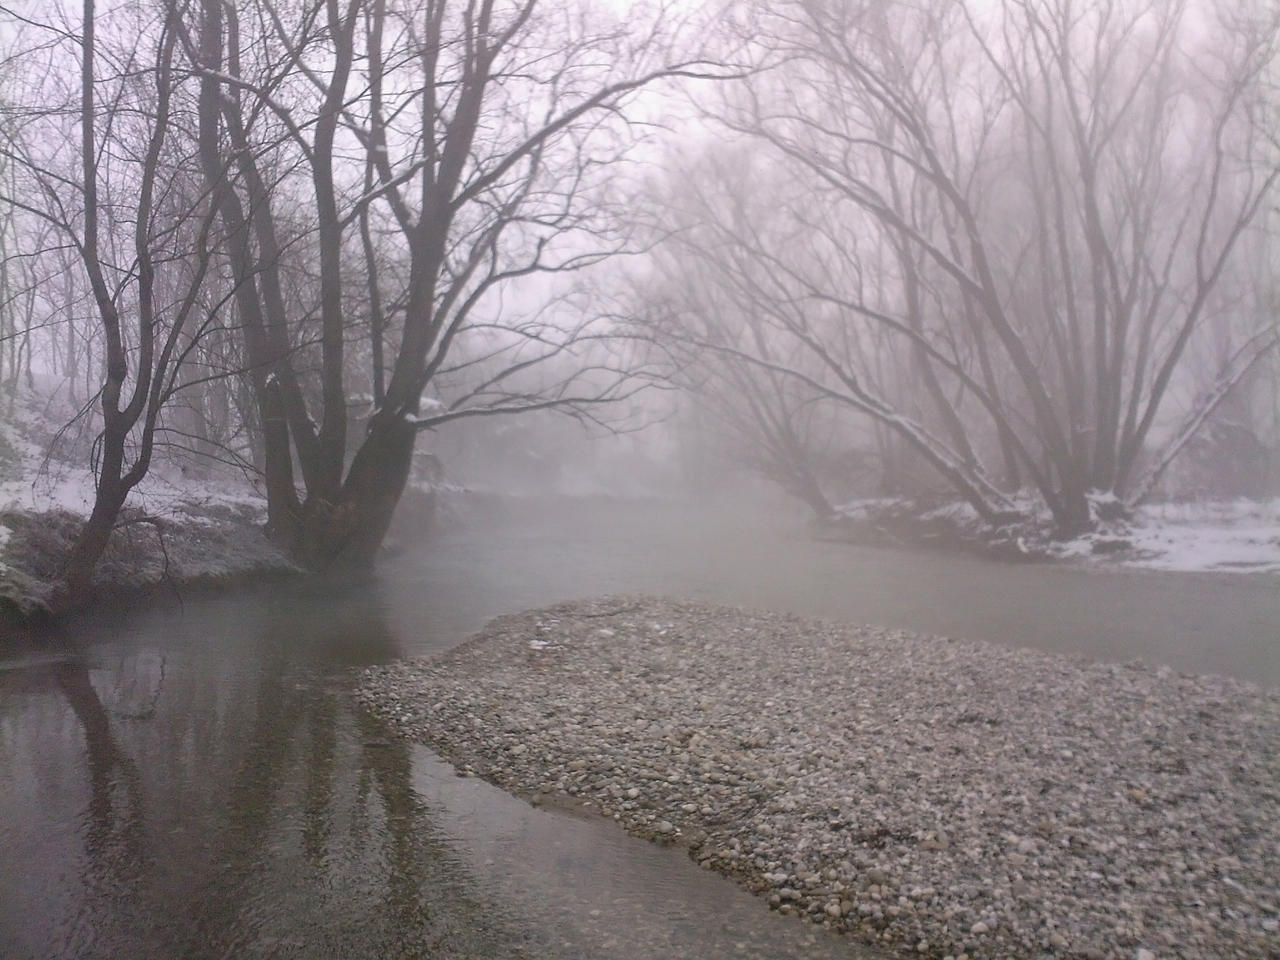 River with snow and fog 01 by Simbores